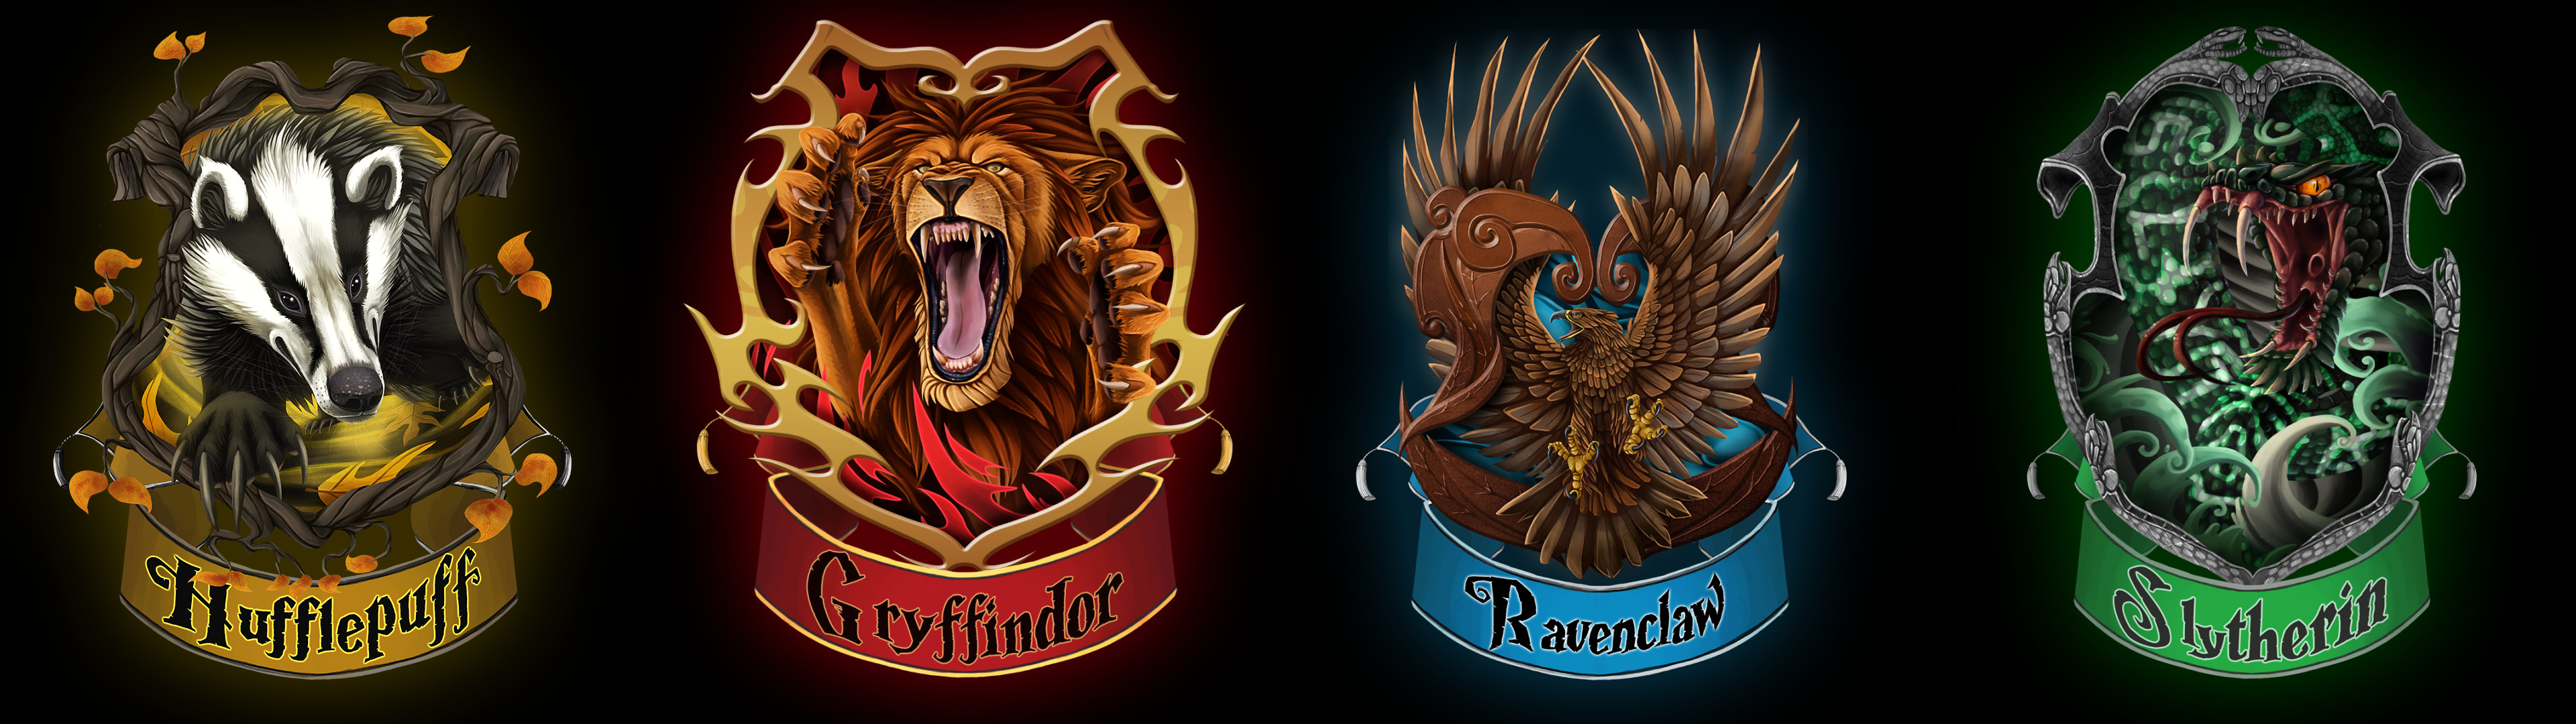 Ravenclaw Wallpaper Hd 69 Images